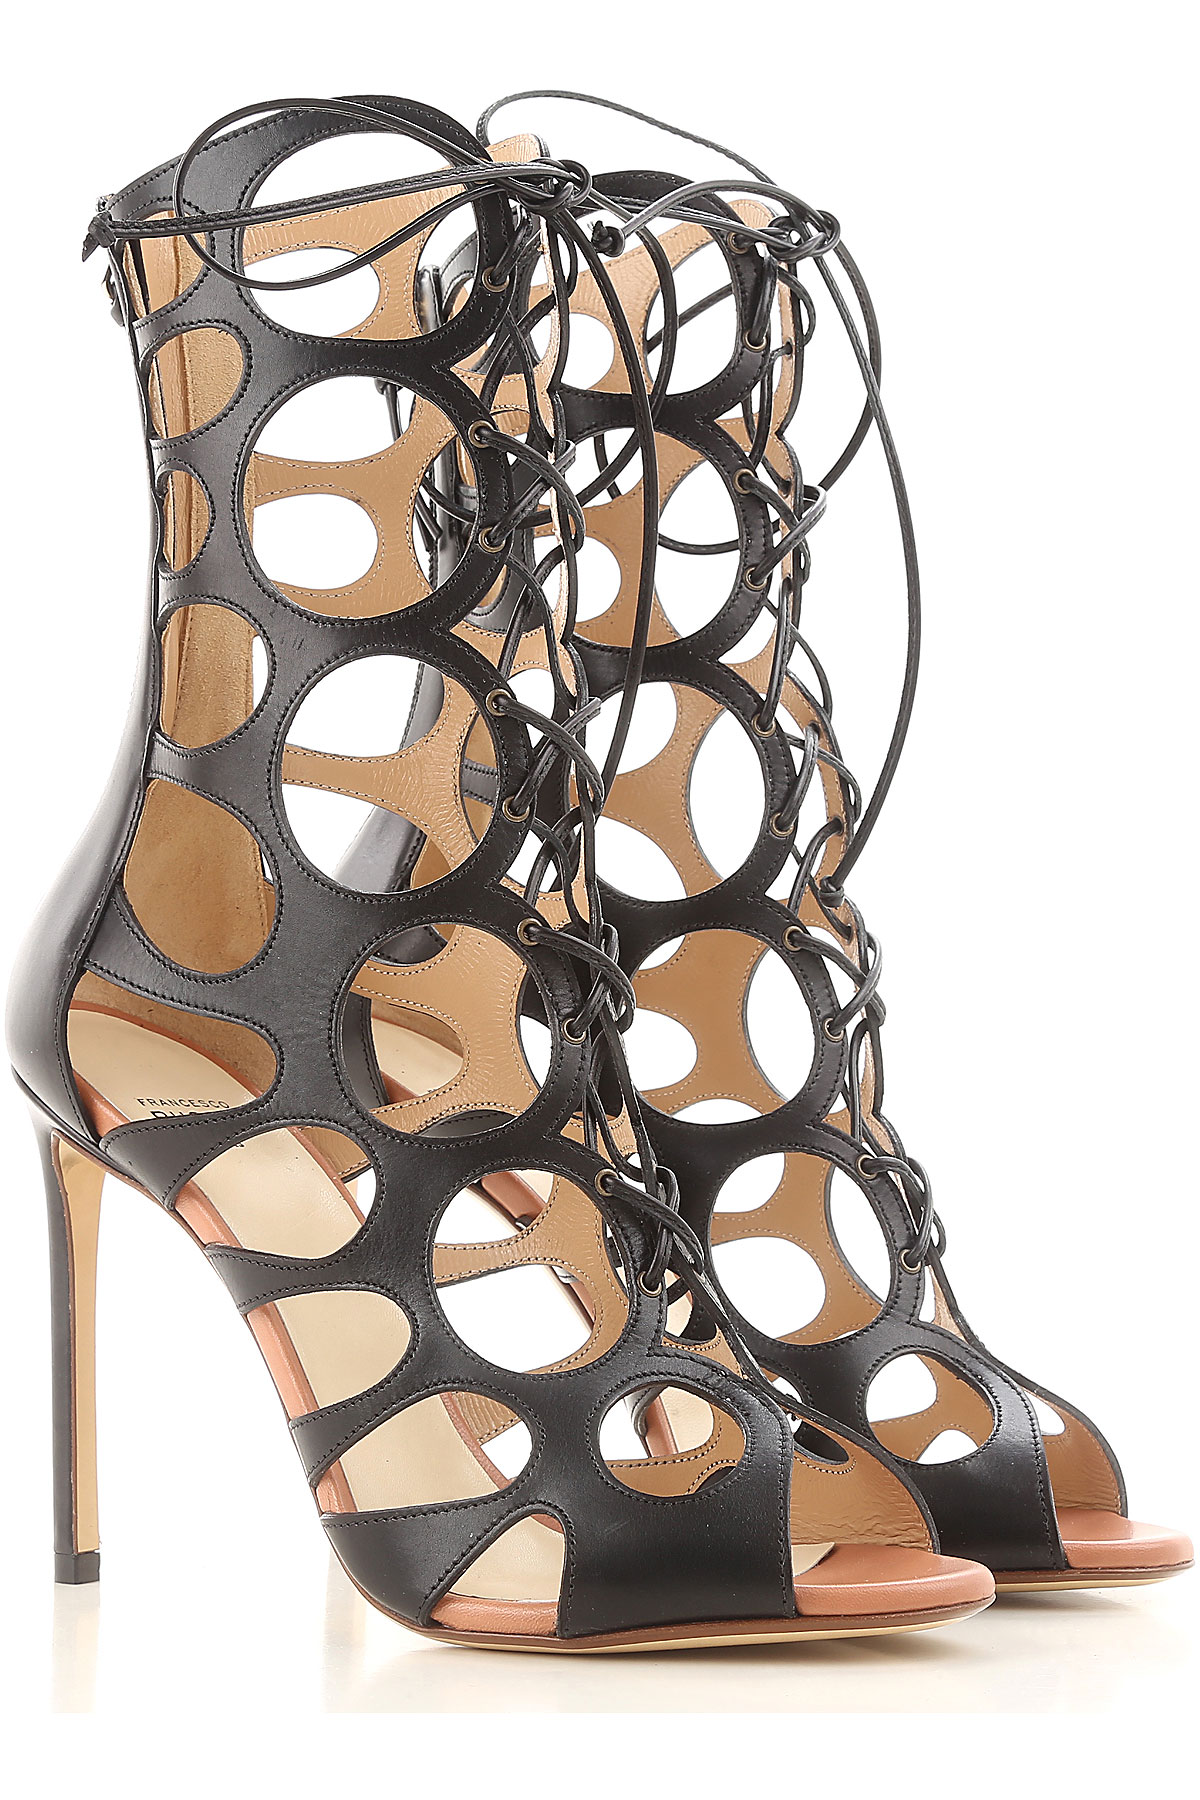 Francesco Russo Sandals for Women On Sale in Outlet, Black, Leather, 2019, 6 6.5 8